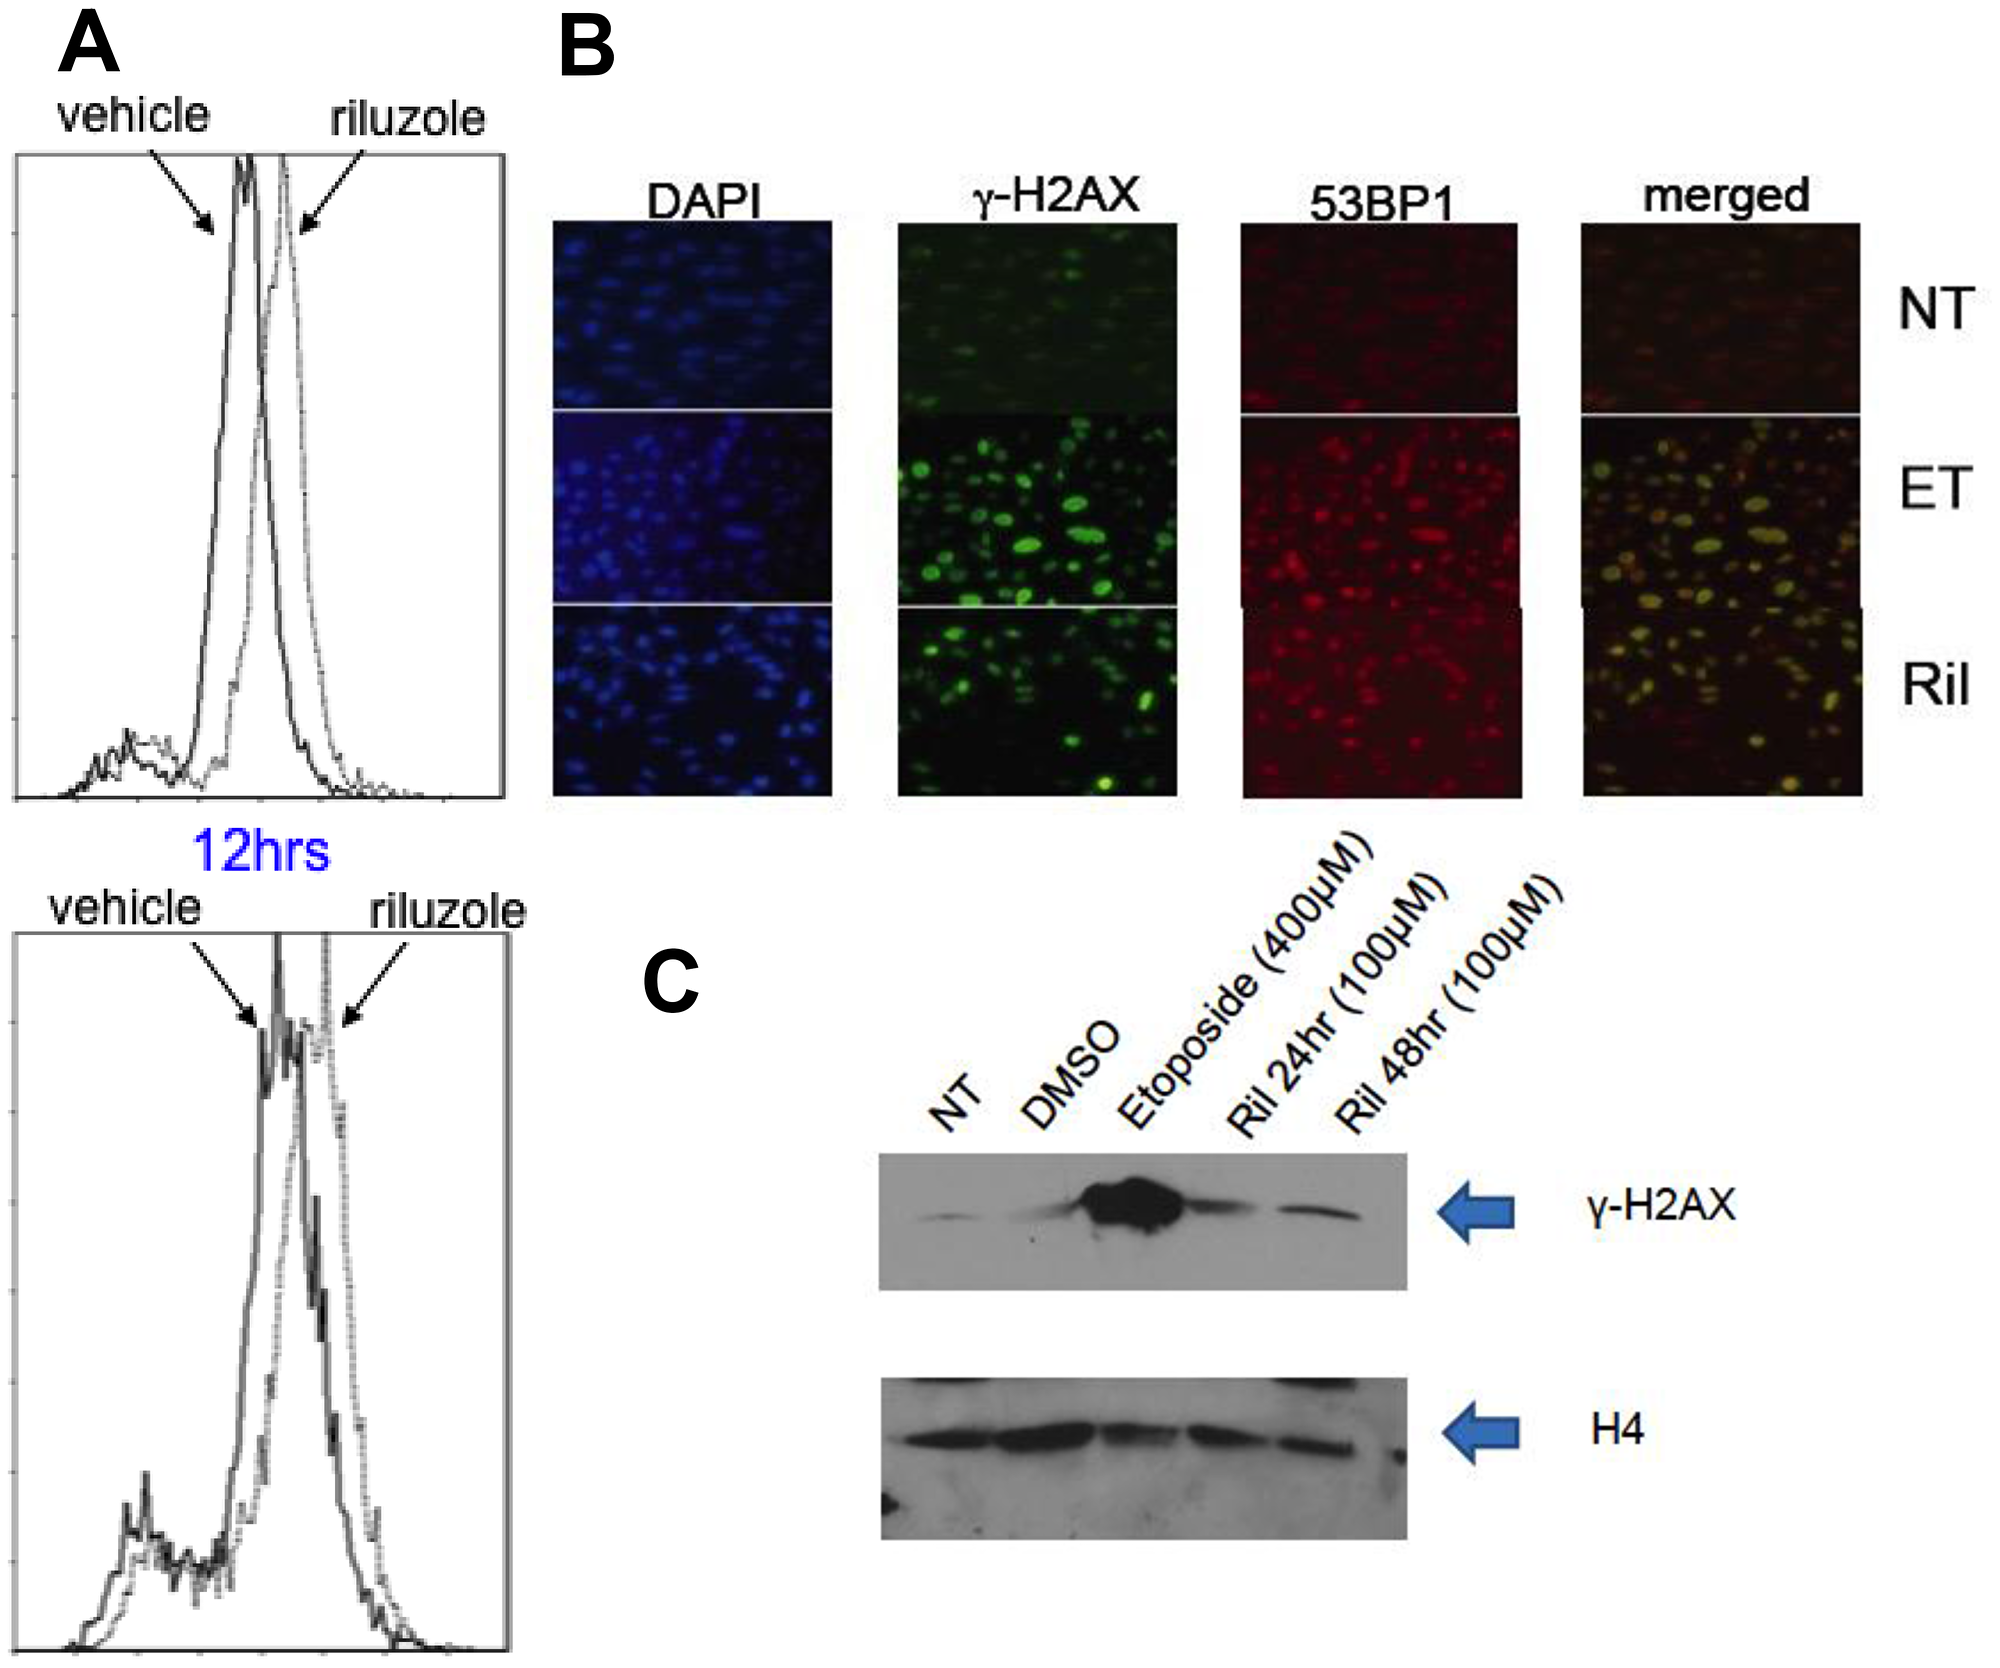 ROS mediated DNA damage in glioma cells treated with RIL.